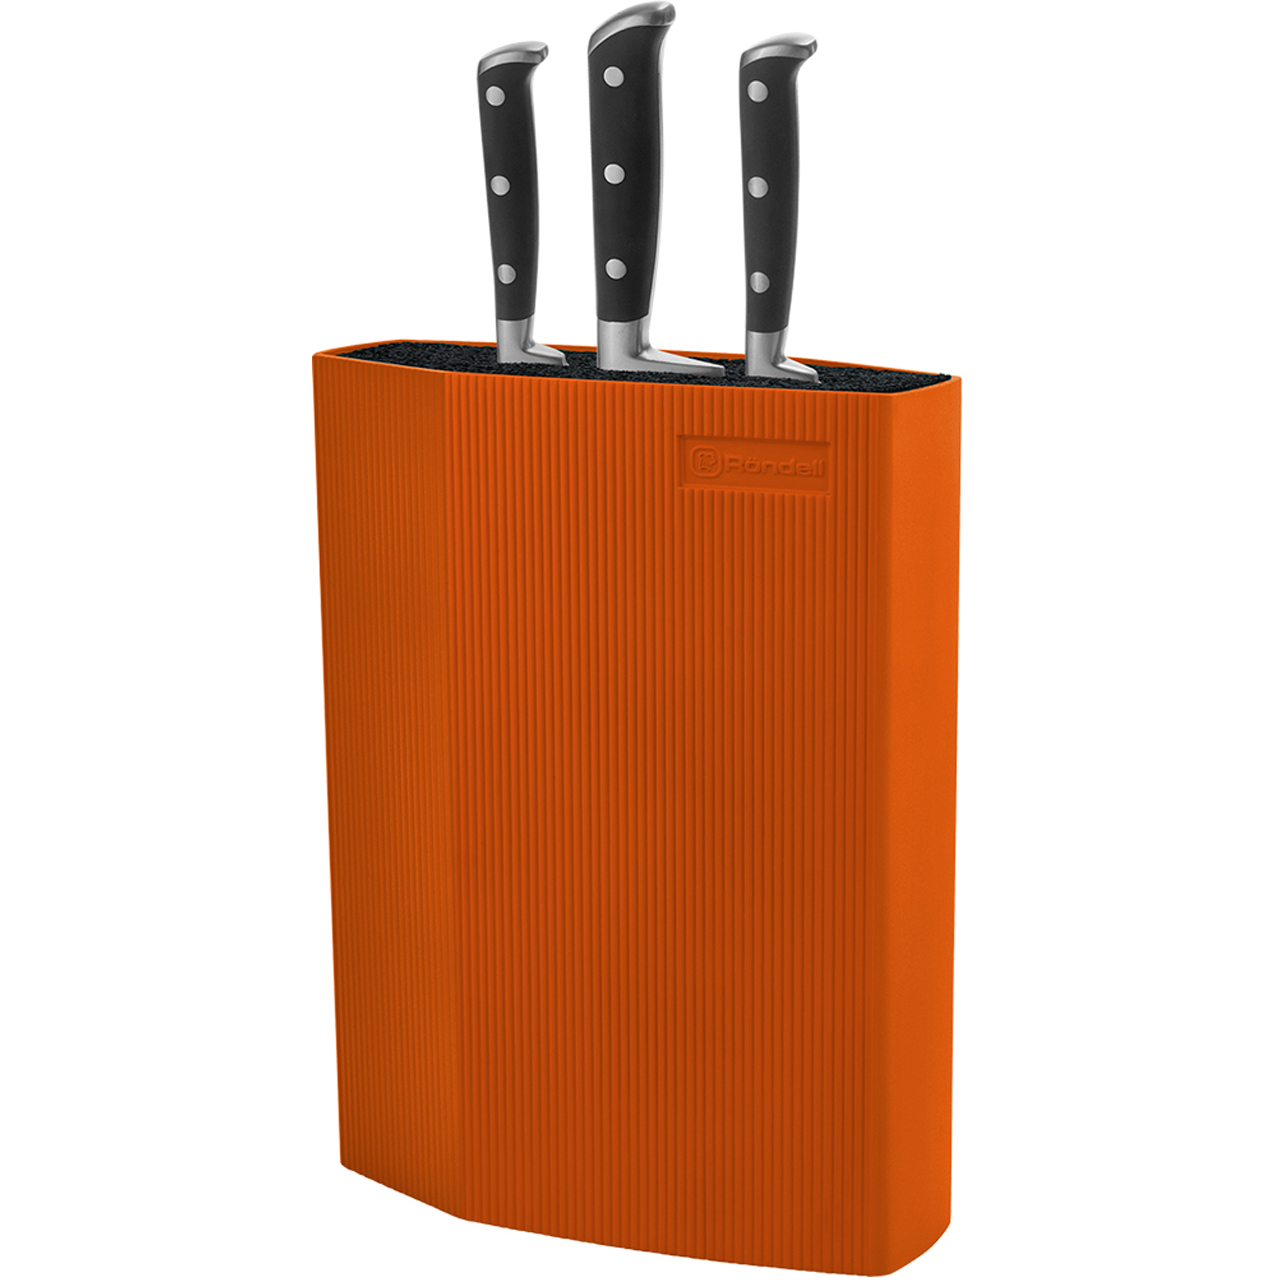 Stand for knives Rondell Orange RD-470 engineering plastic holder stand for cell phone tablet pc more orange